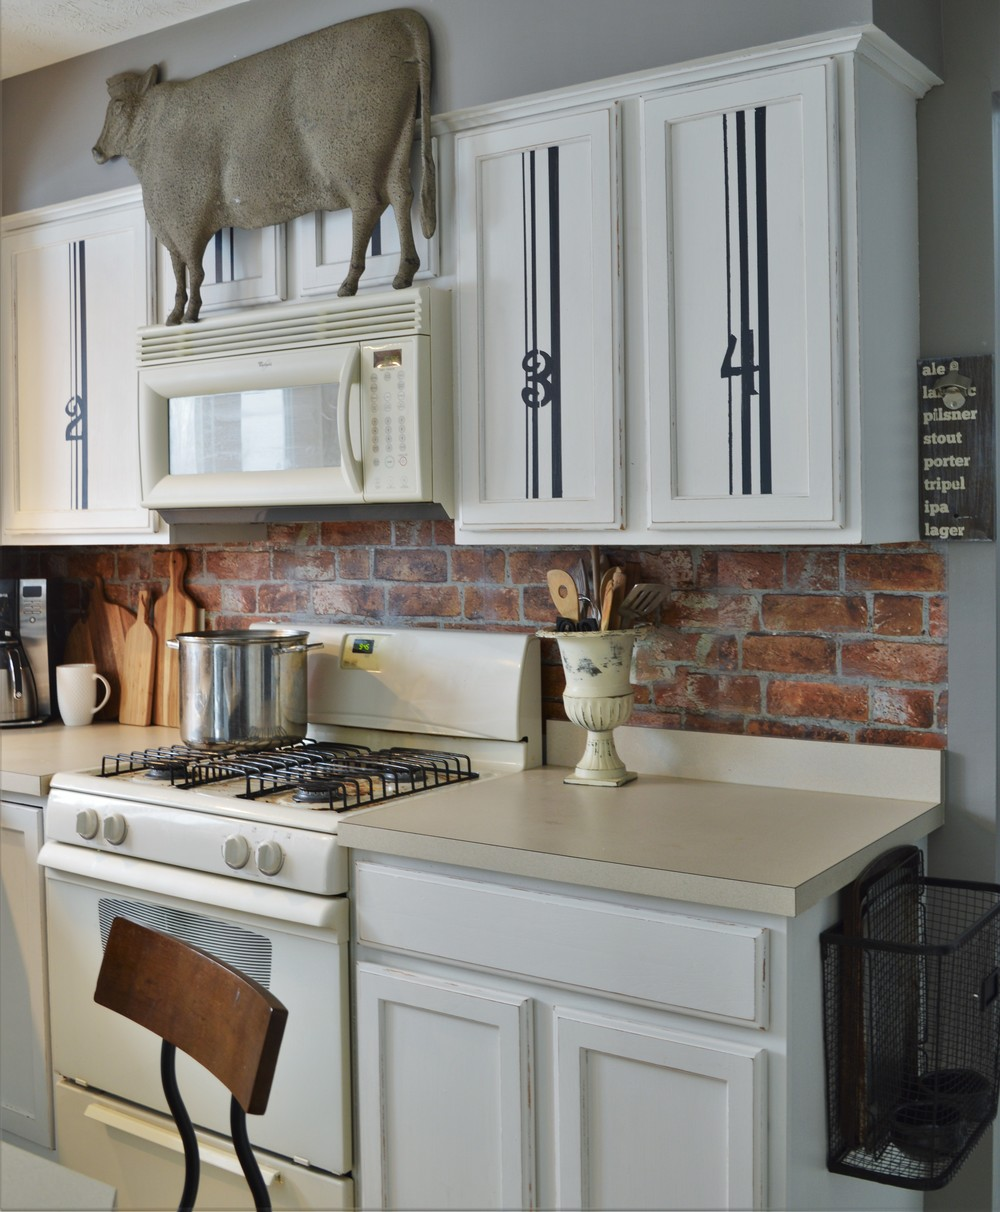 Farmhouse Kitchen Cabinets: Adding Farmhouse Character To The Kitchen